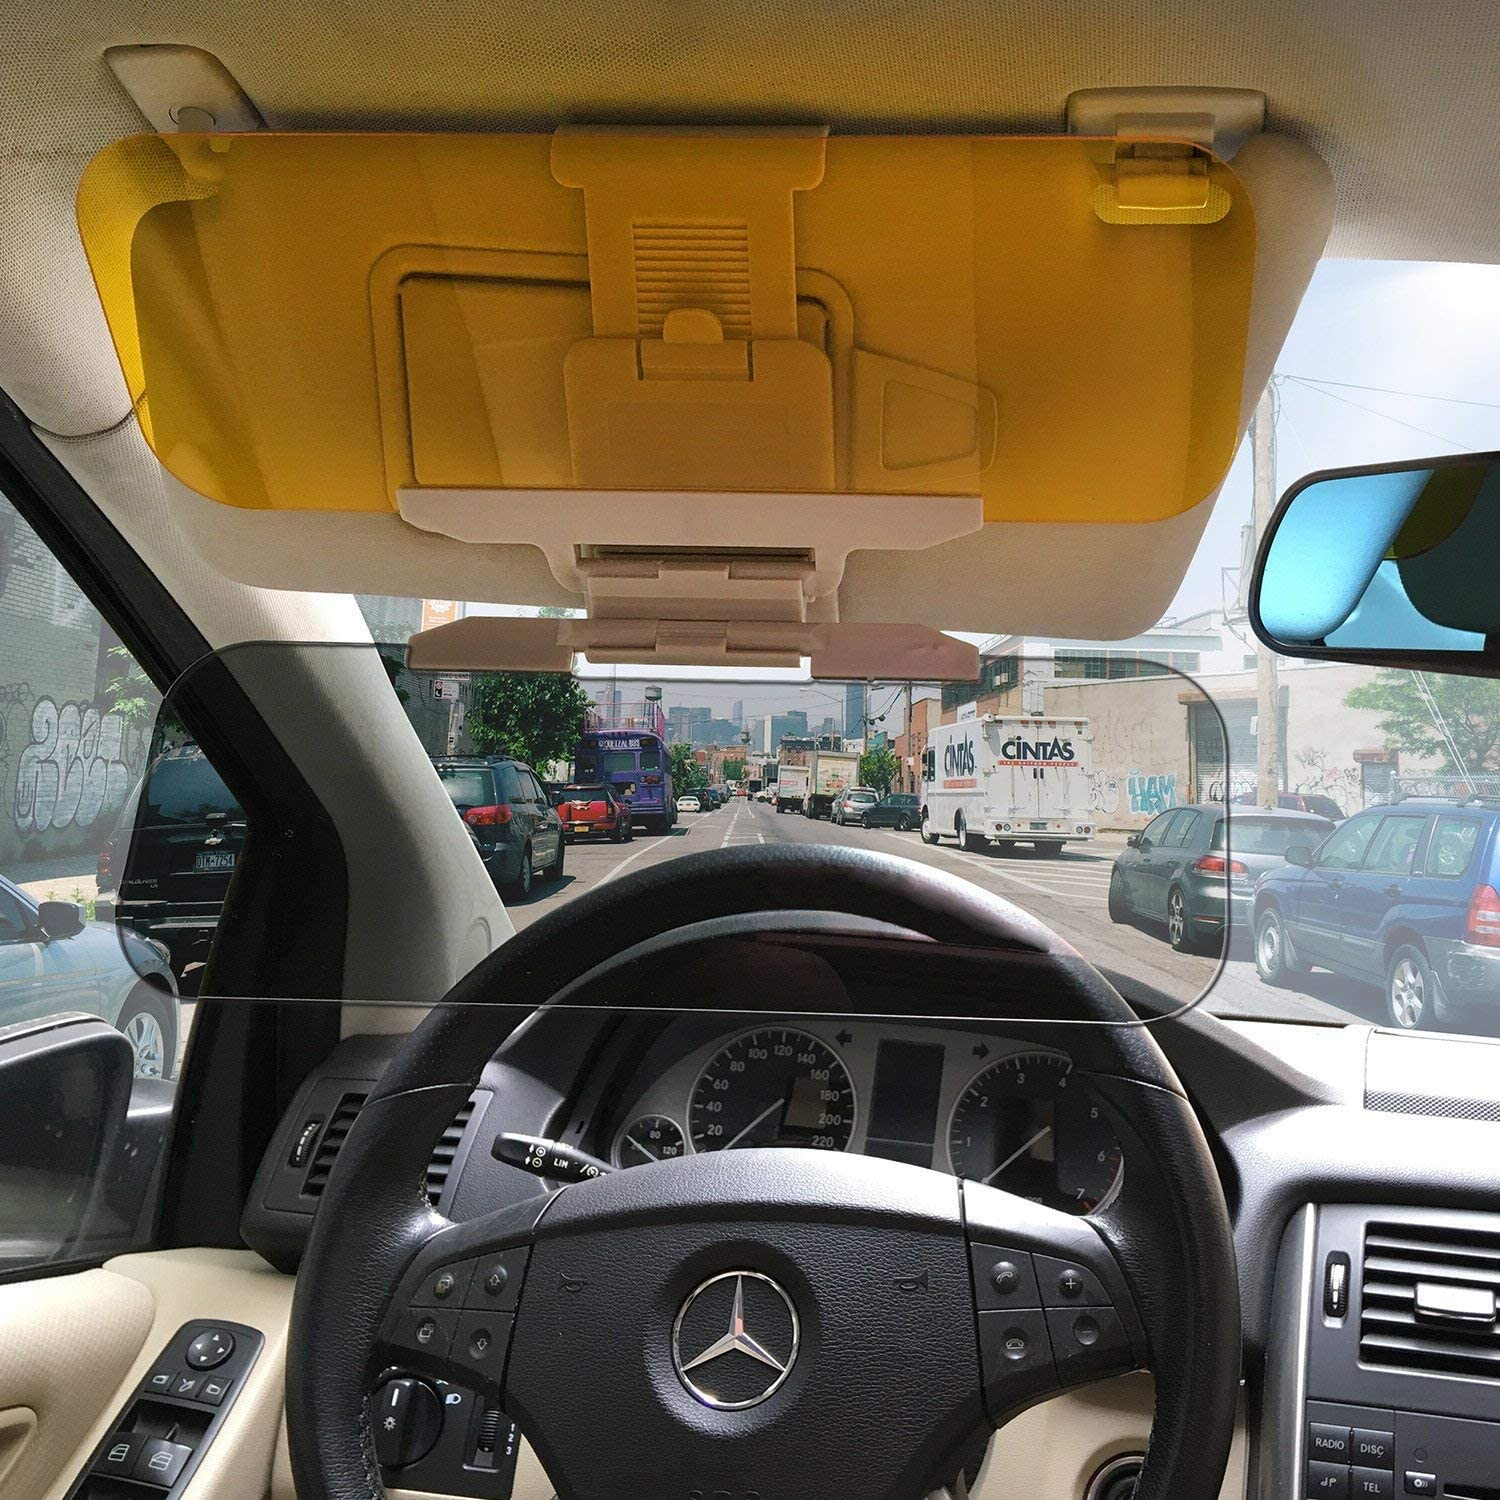 Car Sun Visor Extender Anti Glare Blocker HD Day Night Driving Visor Glare Sun Shield Tinted Lens Blocker Car Extender Visor Sunscreen Extendable Visor for Car Sun Windshield Glare Blocking Visor